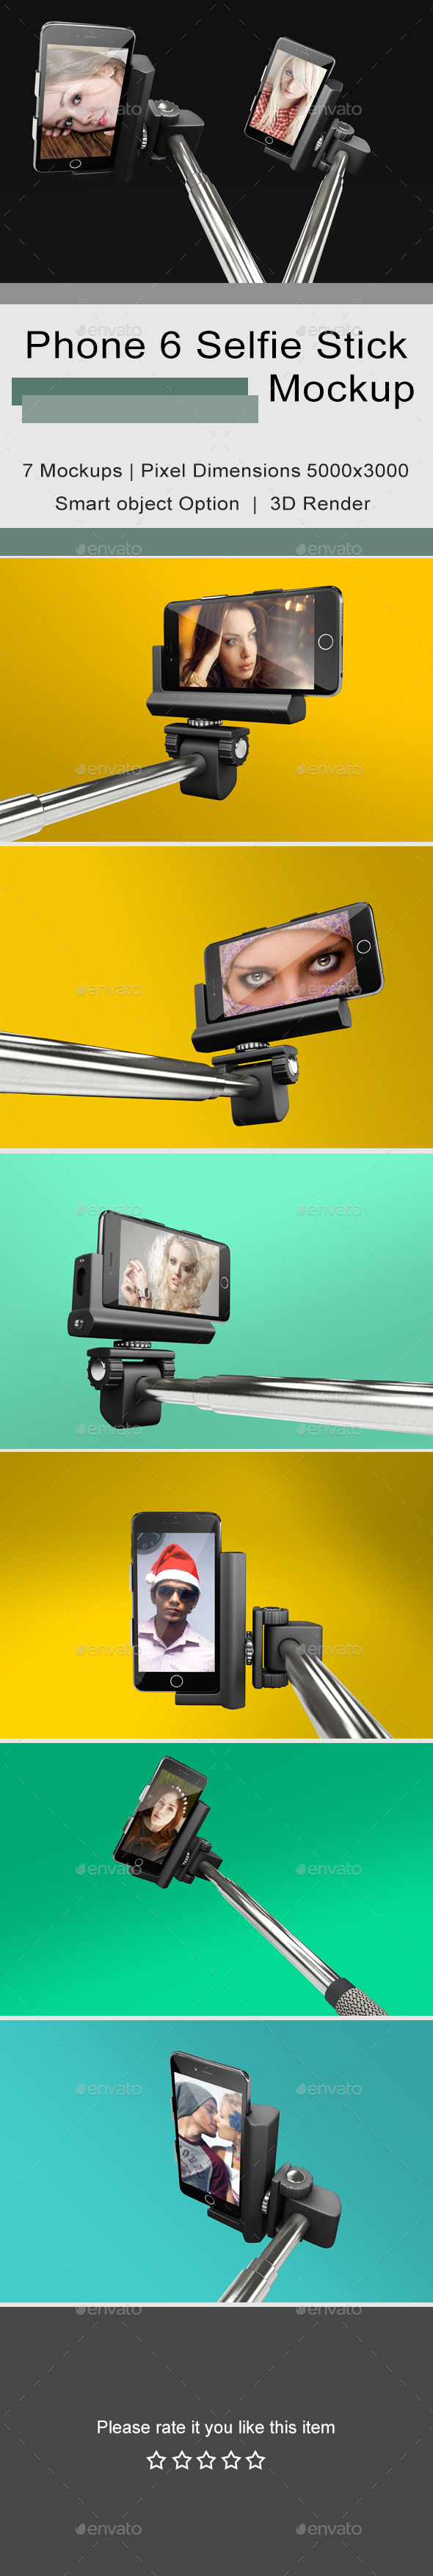 Phone 6 Selfie Stick Mockup 2 - Mobile Displays